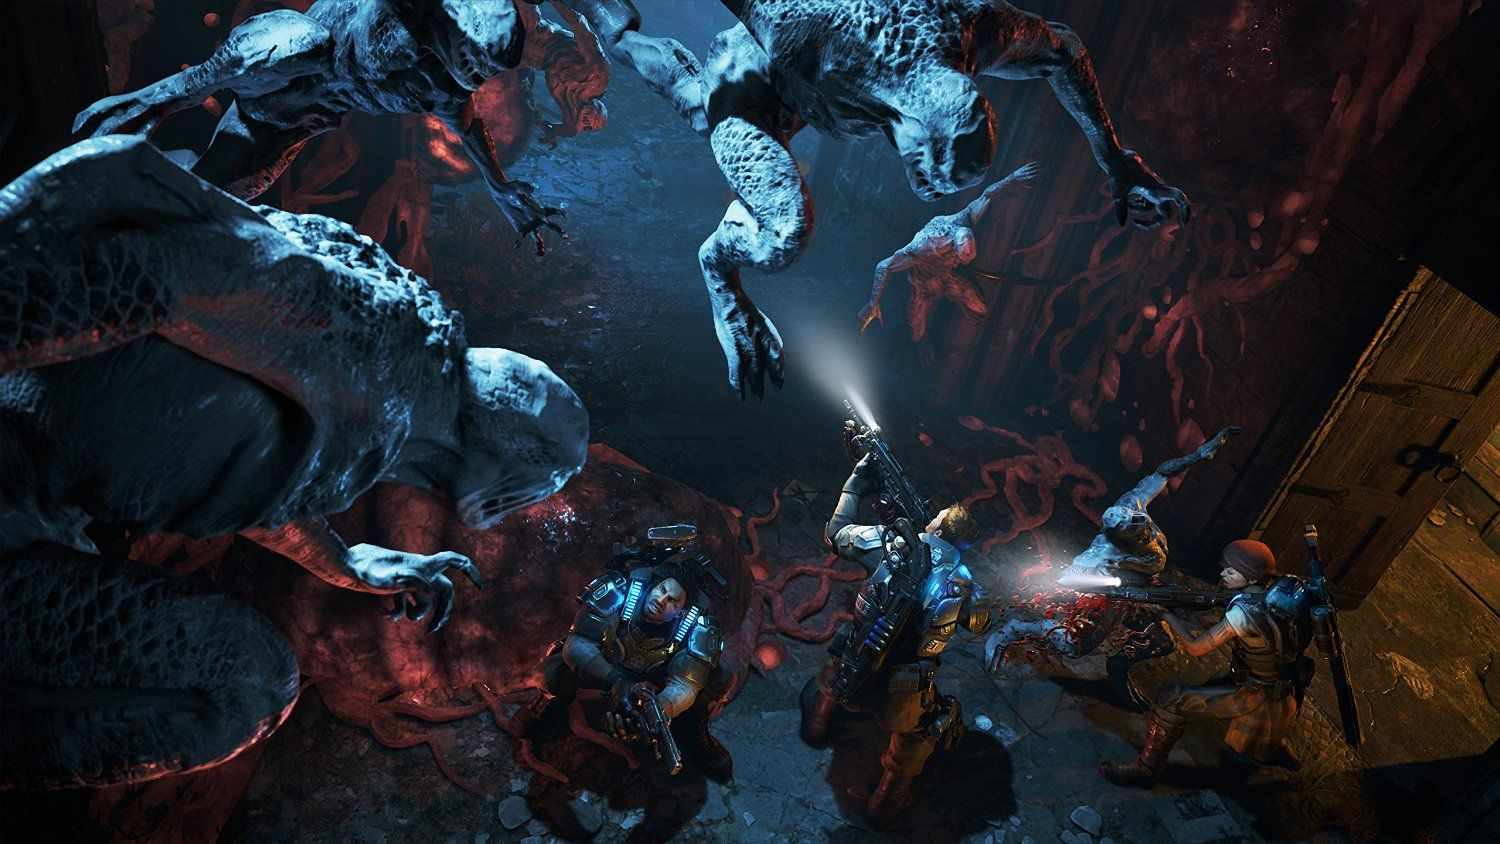 Gears of War 4 (Xbox One) - 8